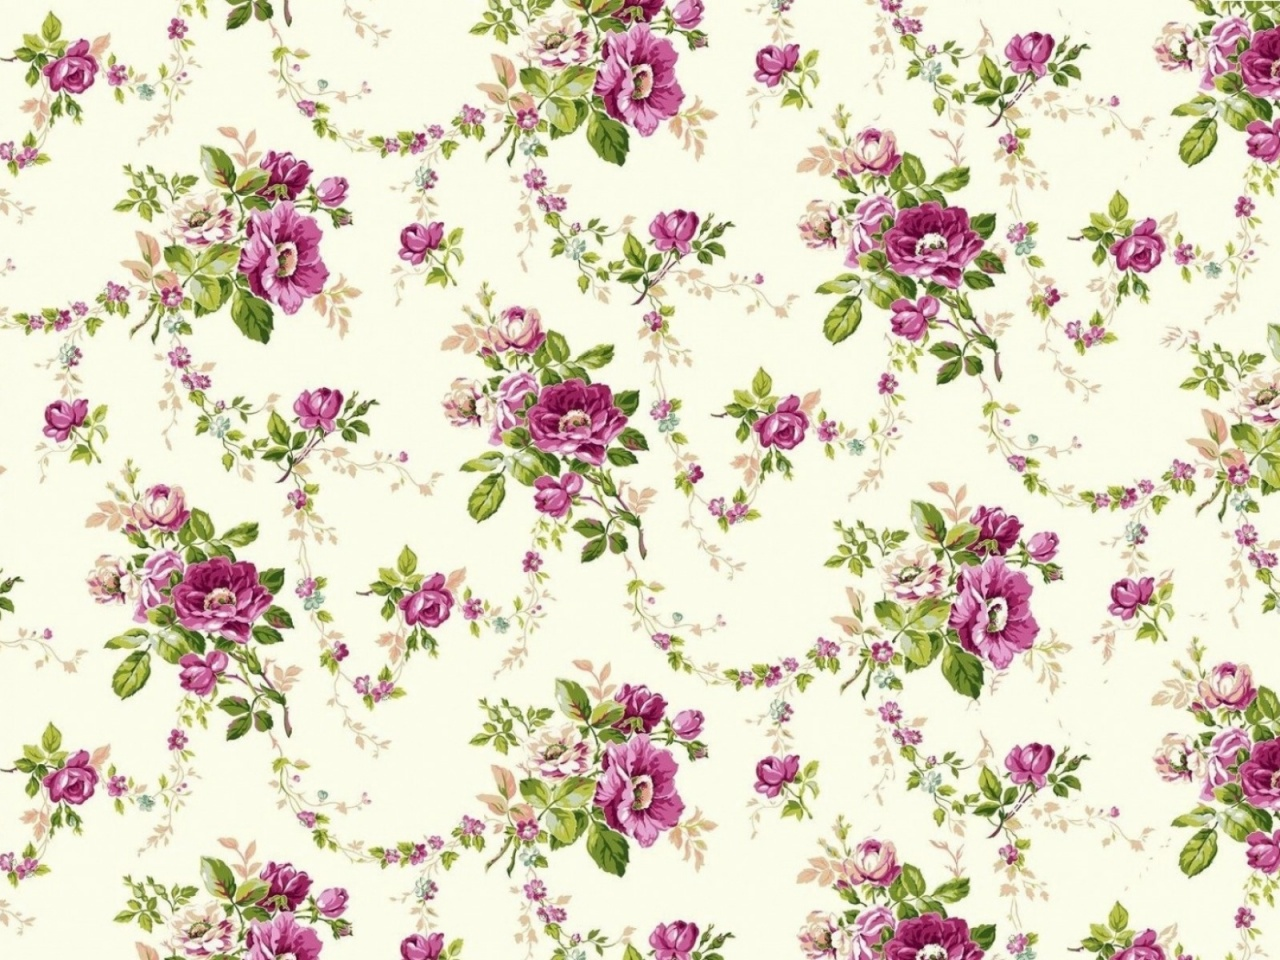 1280x720 purple roses pattern vimeo cover image. Black Bedroom Furniture Sets. Home Design Ideas